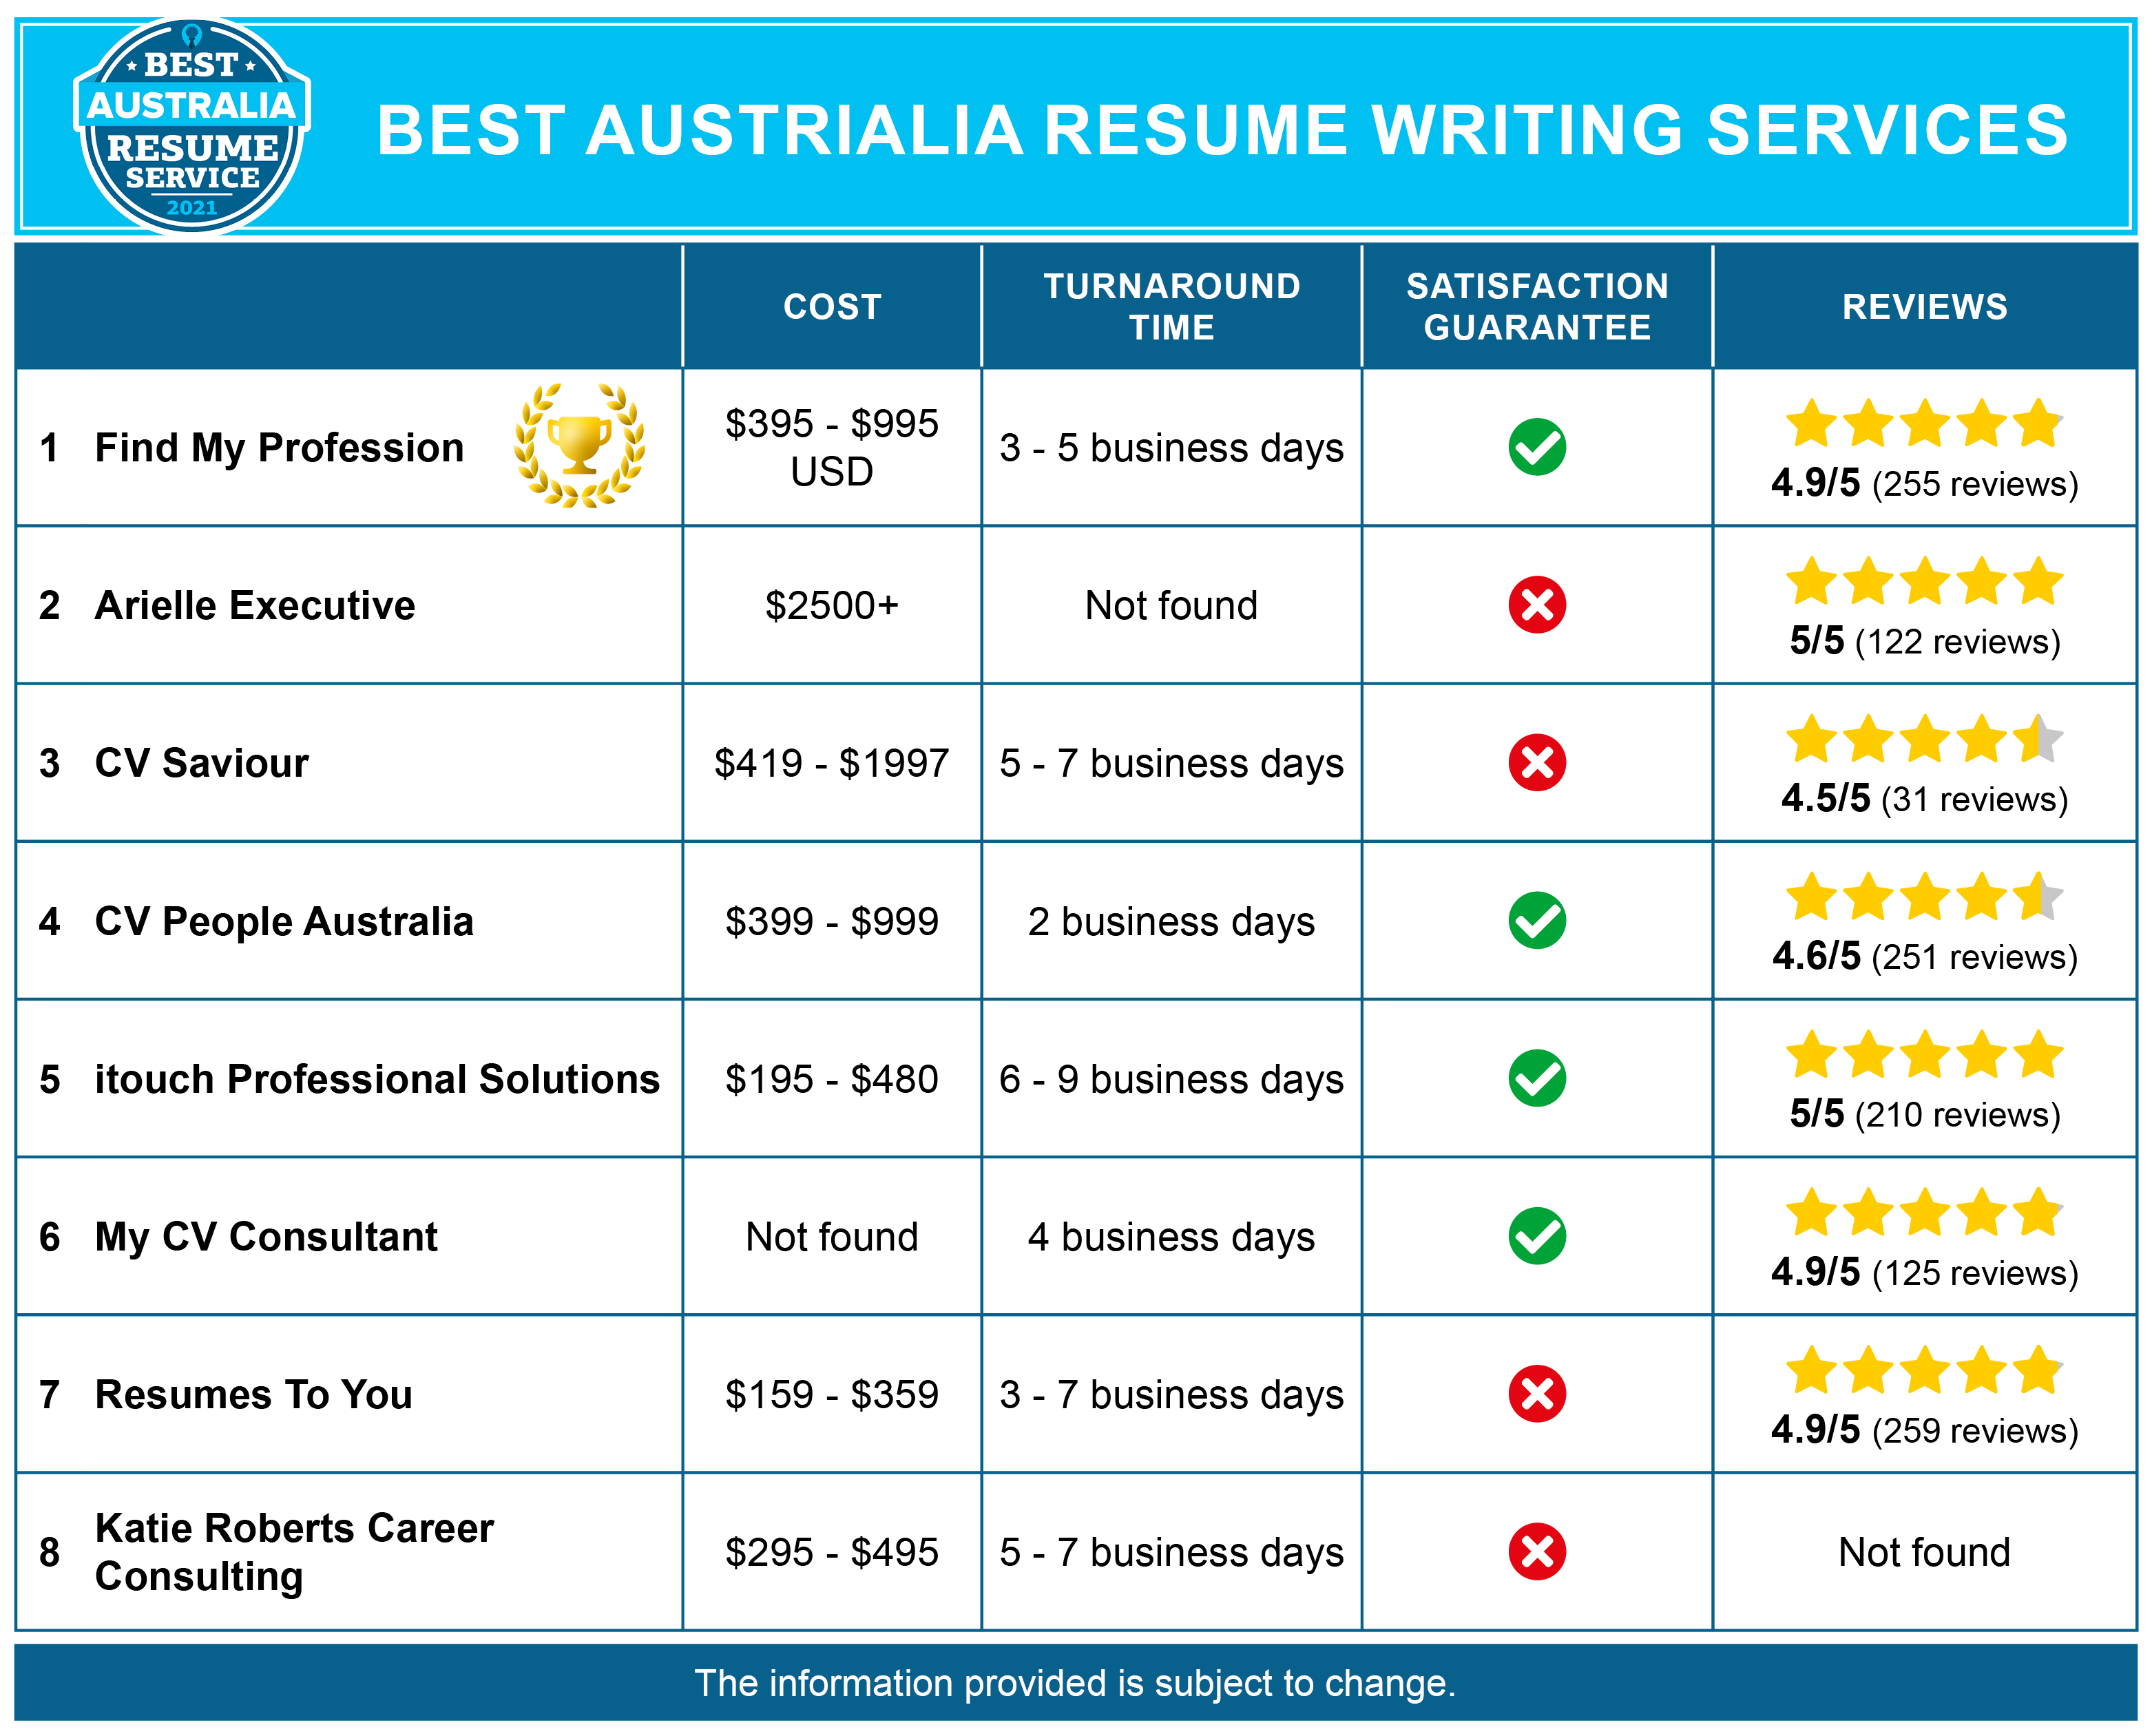 Best Australia Resume Services